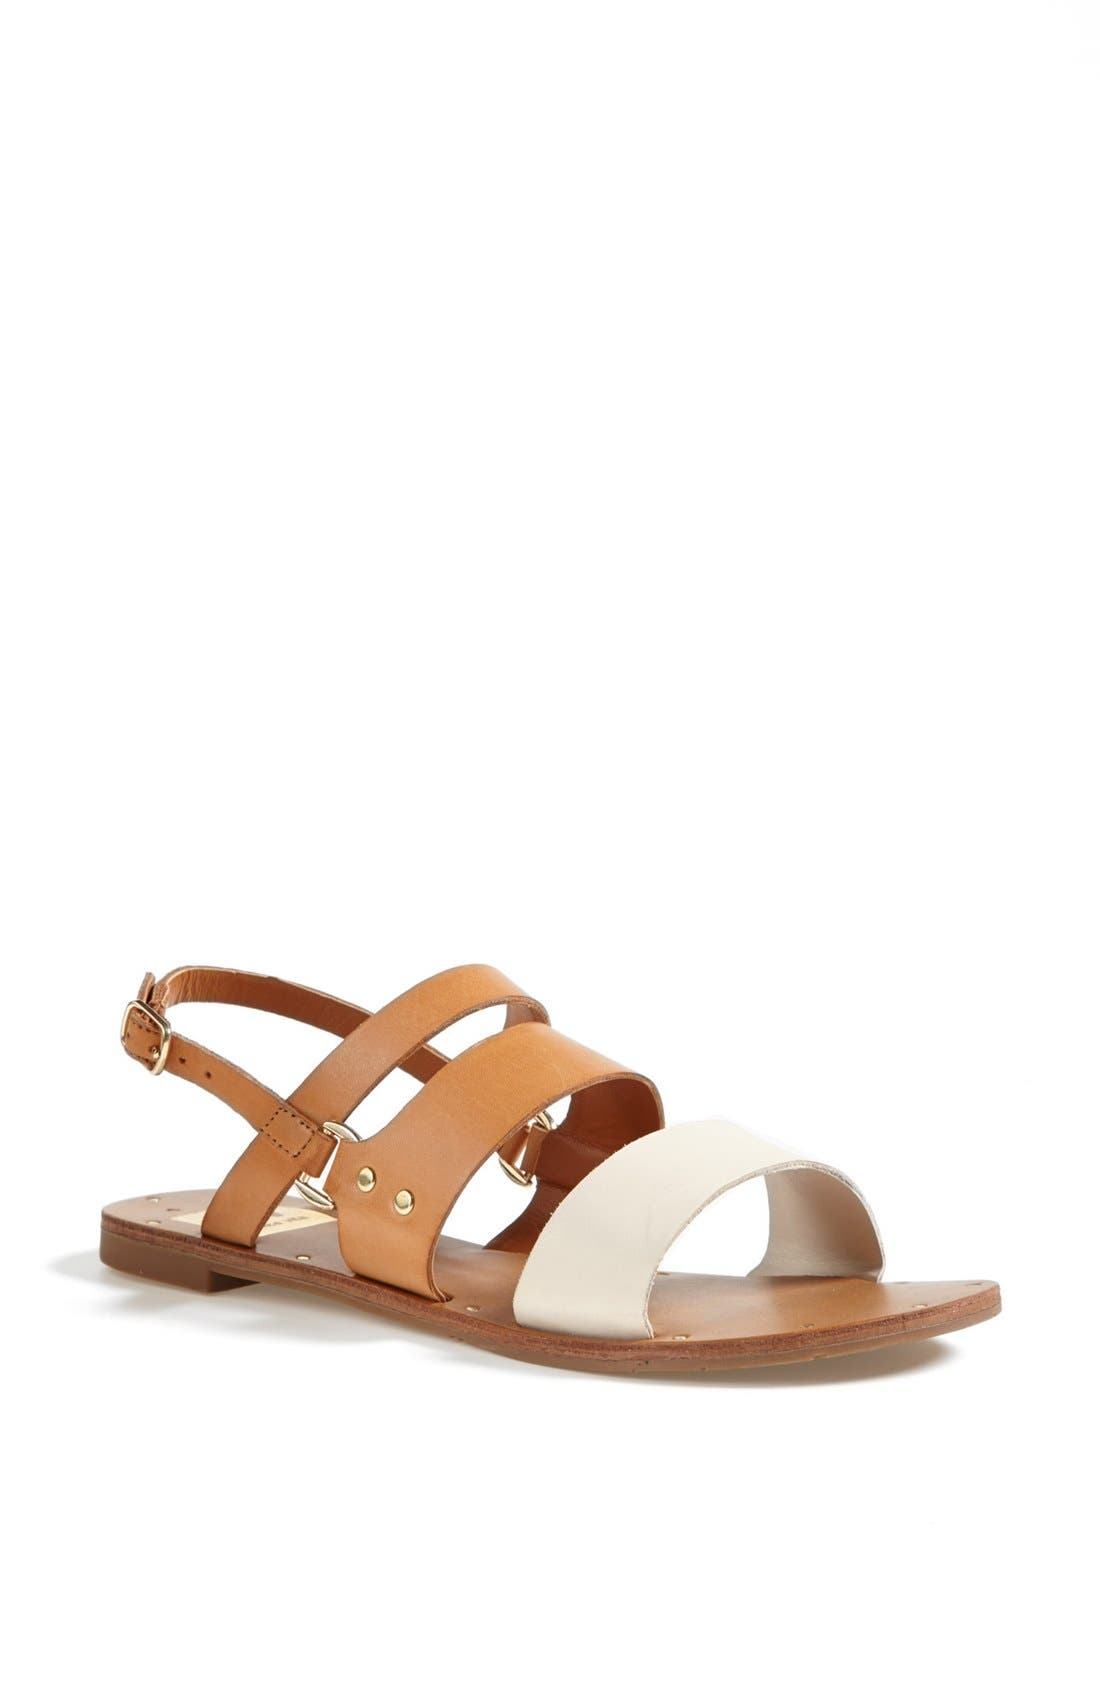 Alternate Image 1 Selected - DV by Dolce Vita 'Deah' Sandal (Nordstrom Exclusive)